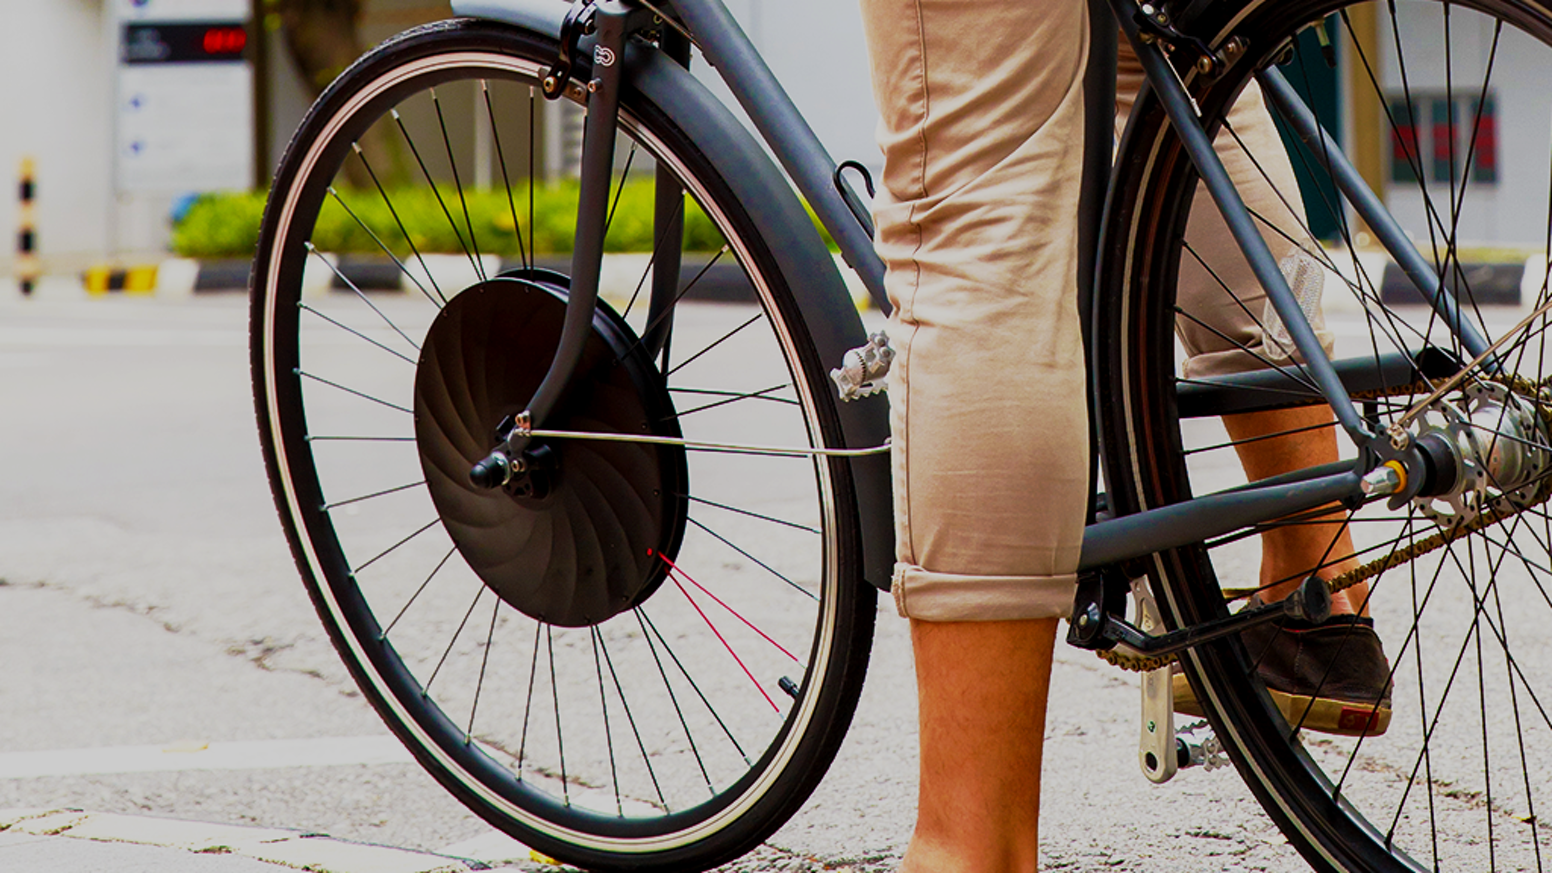 UrbanX | Convert Any Bike to an Electric Bike in 60 Seconds by